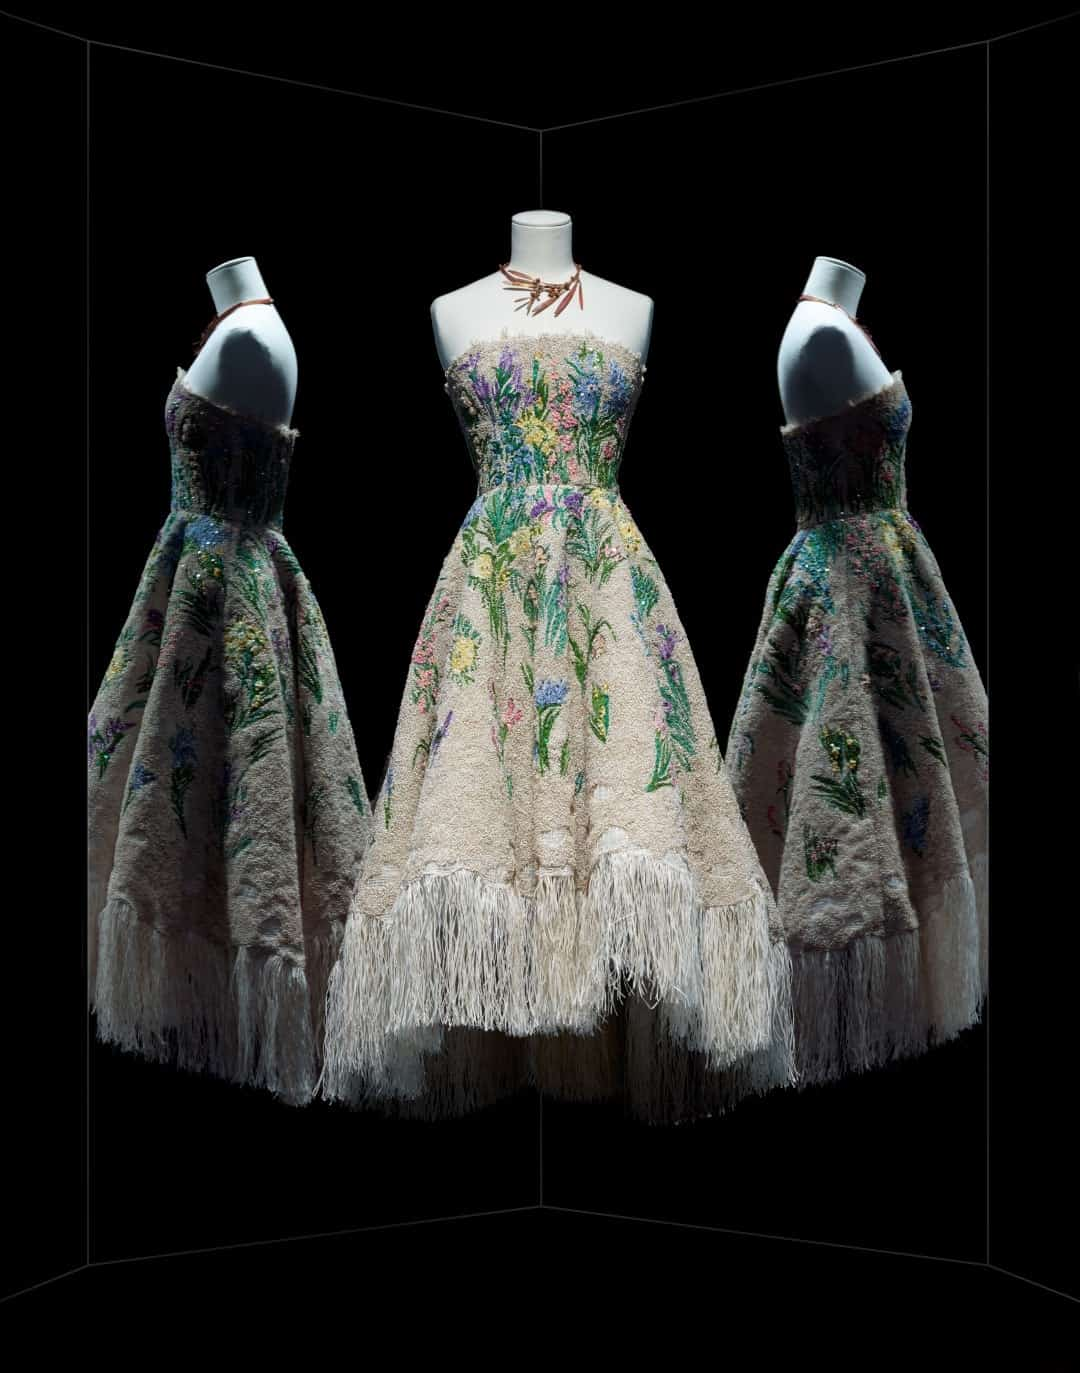 robe floral christian dior exposition